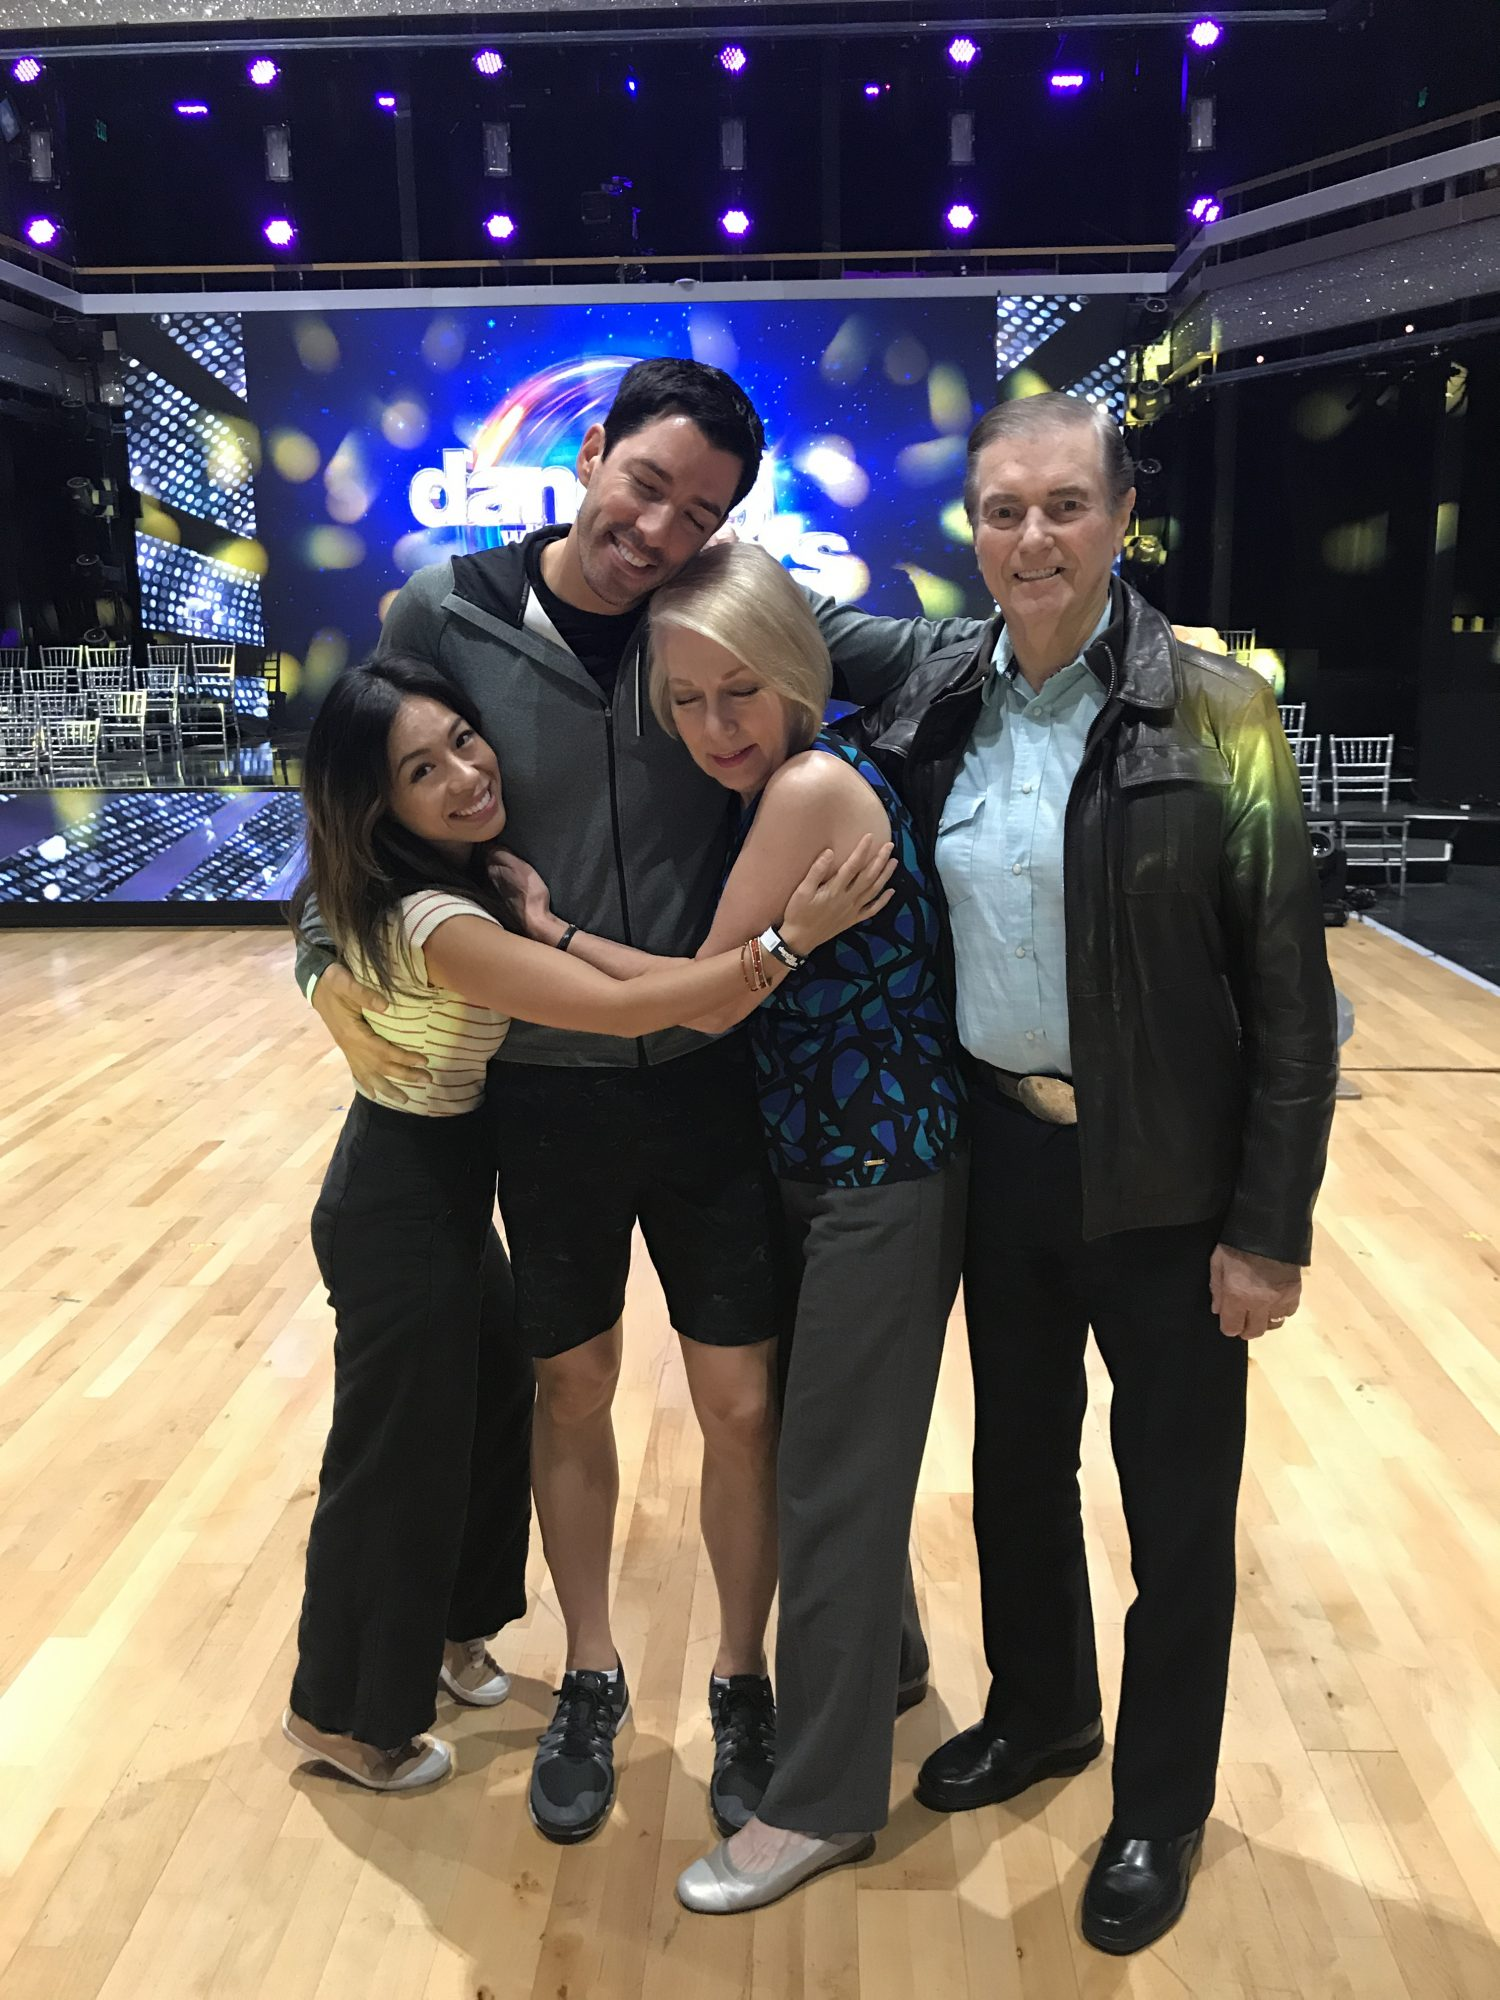 drew scott dancing with the stars photo diary courtesy drew scott